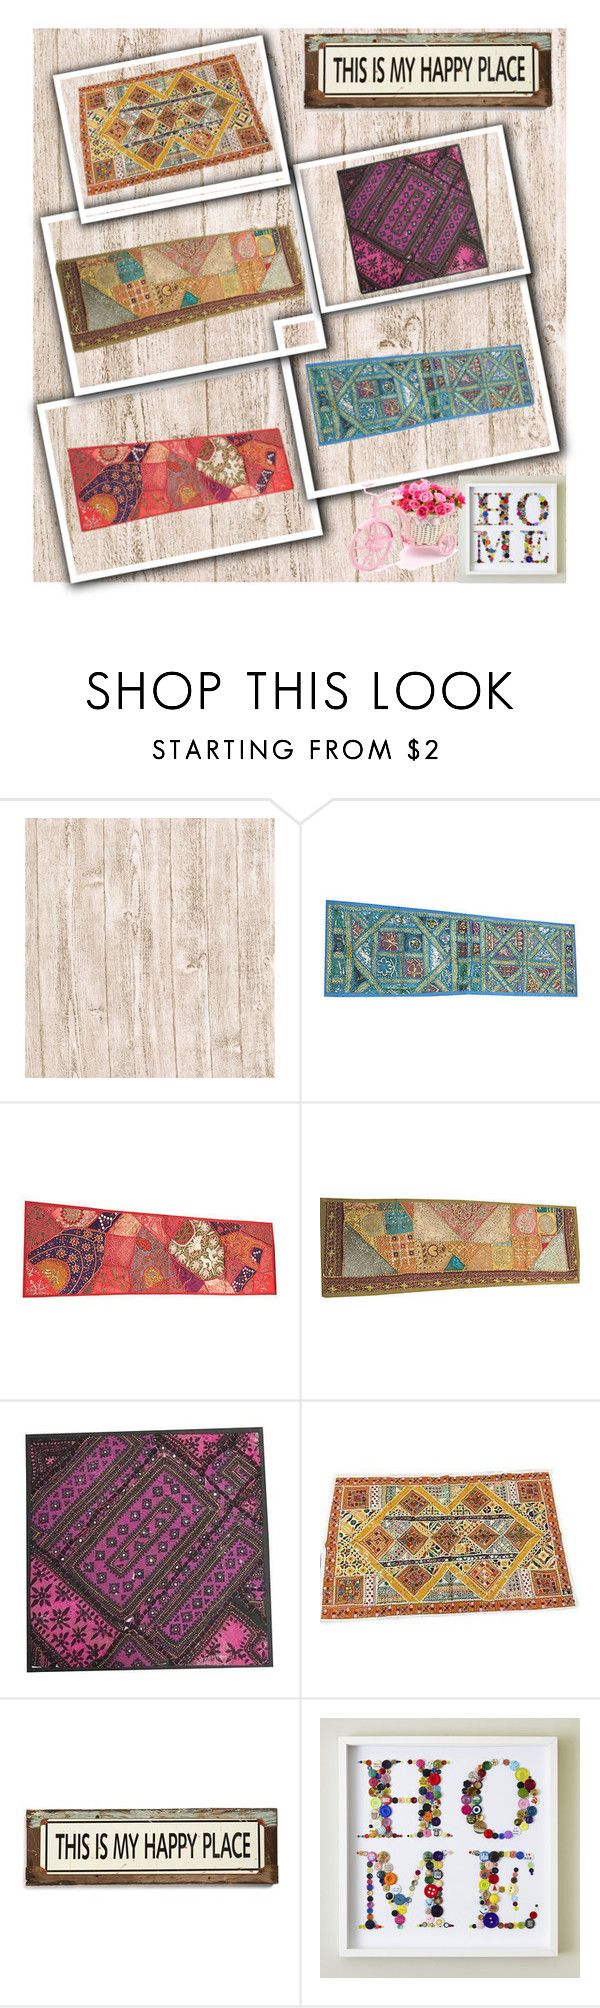 HOME DECOR WALL HANGING TAPESTRIES by baydeals on Polyvore featuring interior, interiors, interior design, home, home decor, interior decorating, Poncho & Goldstein and vintage   http://www.polyvore.com/cgi/set?id=201914195  #tapestry #wallhanging #boho #vintage #ethnicdecor #ebay #indian #homedecor #decorative